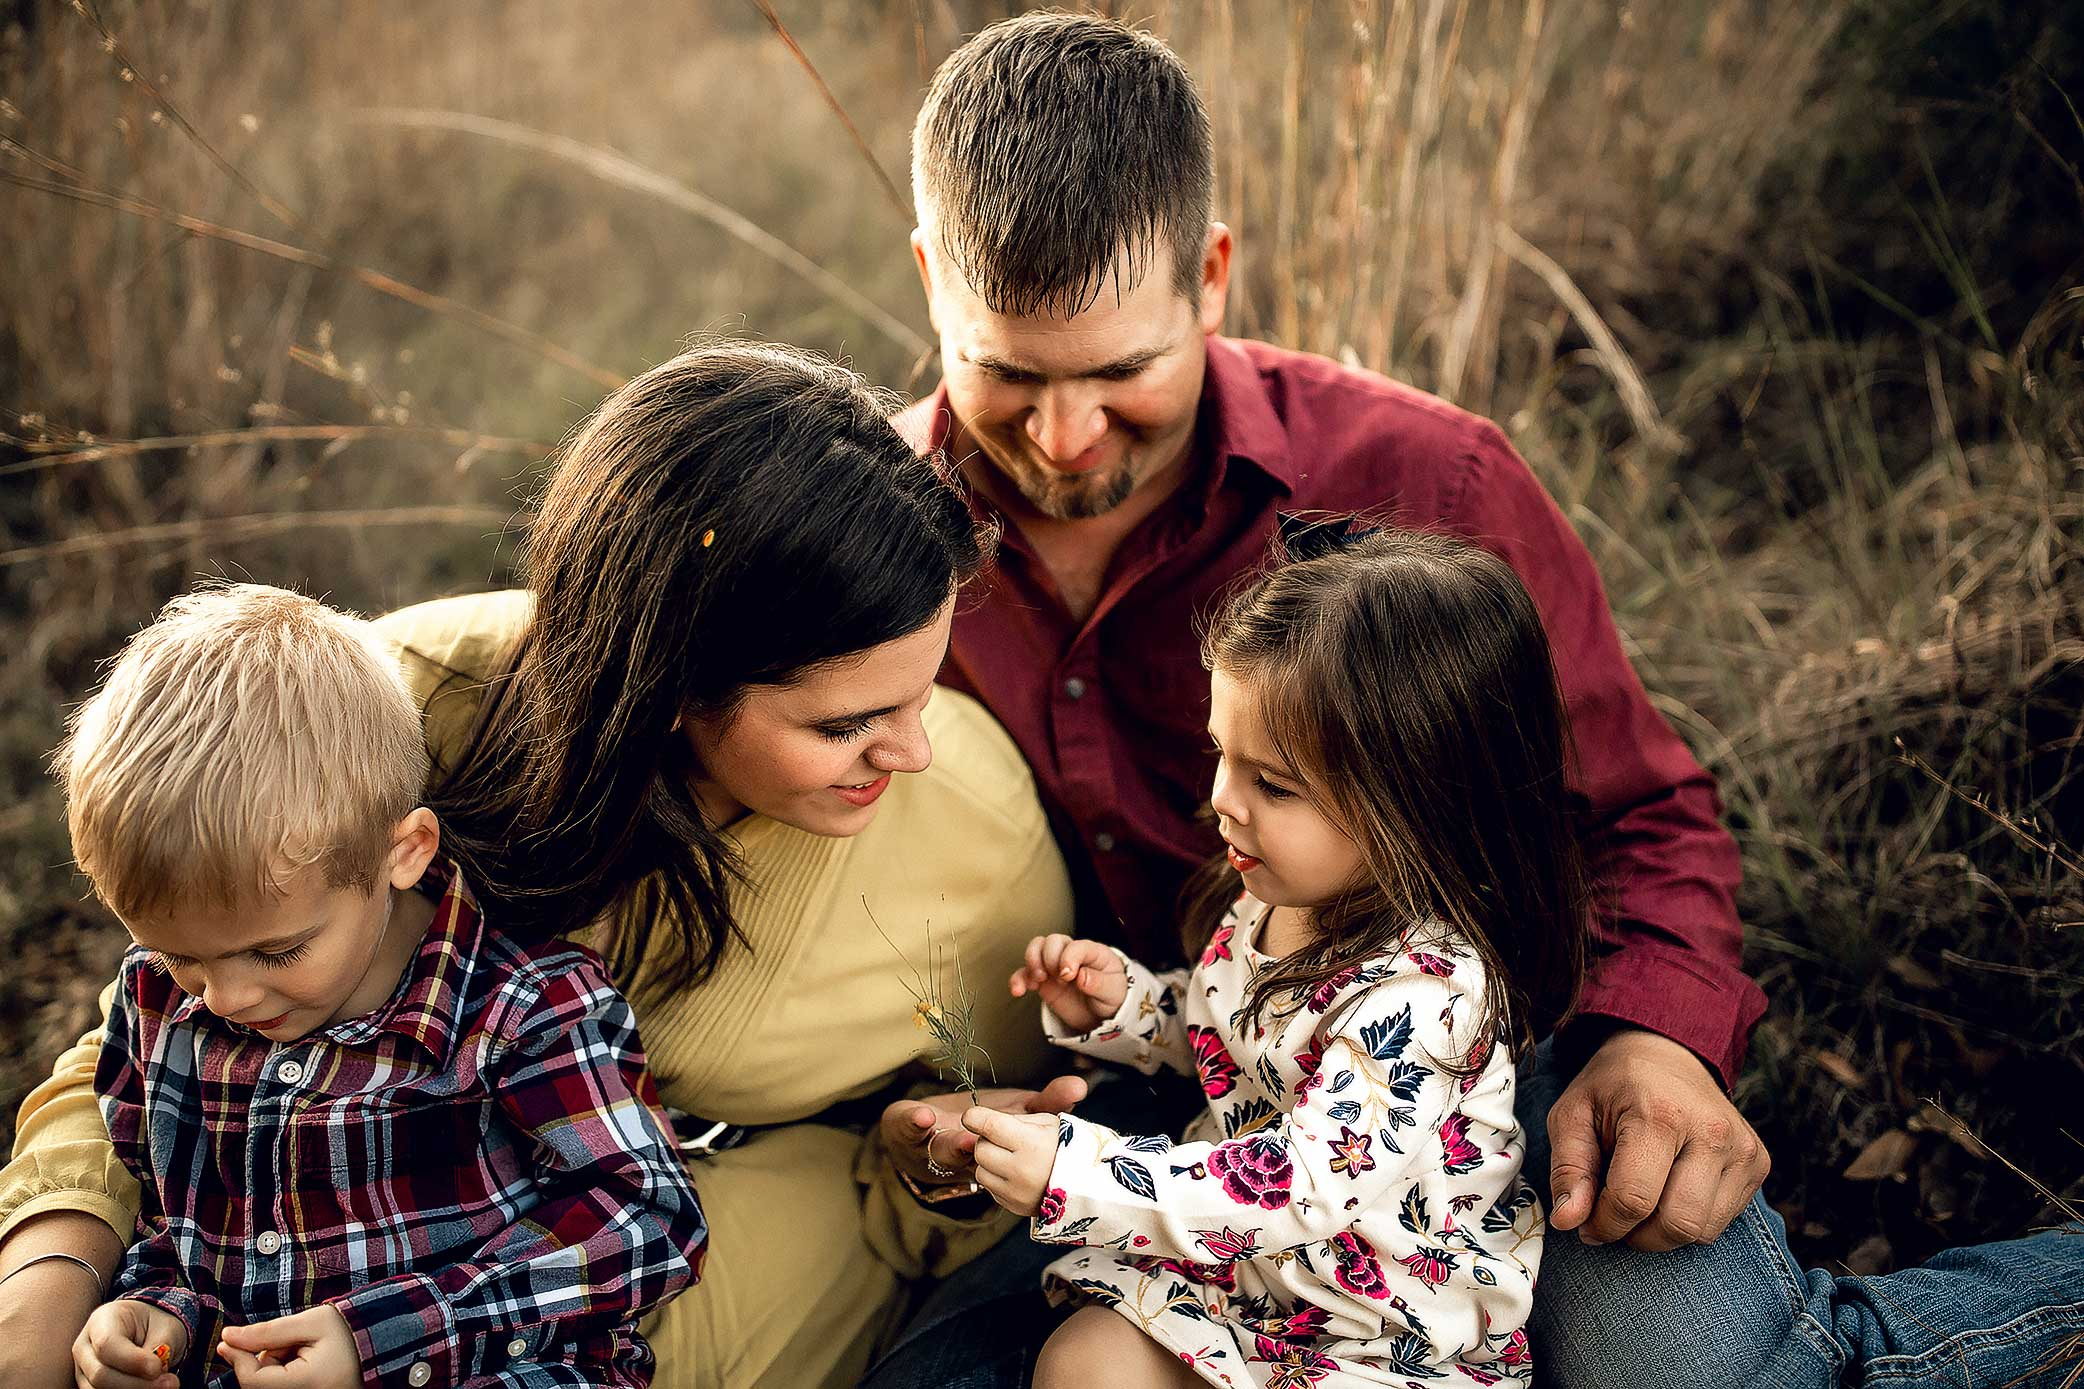 shelby-schiller-photography-family-snuggled-up-together-storytelling-session.jpg